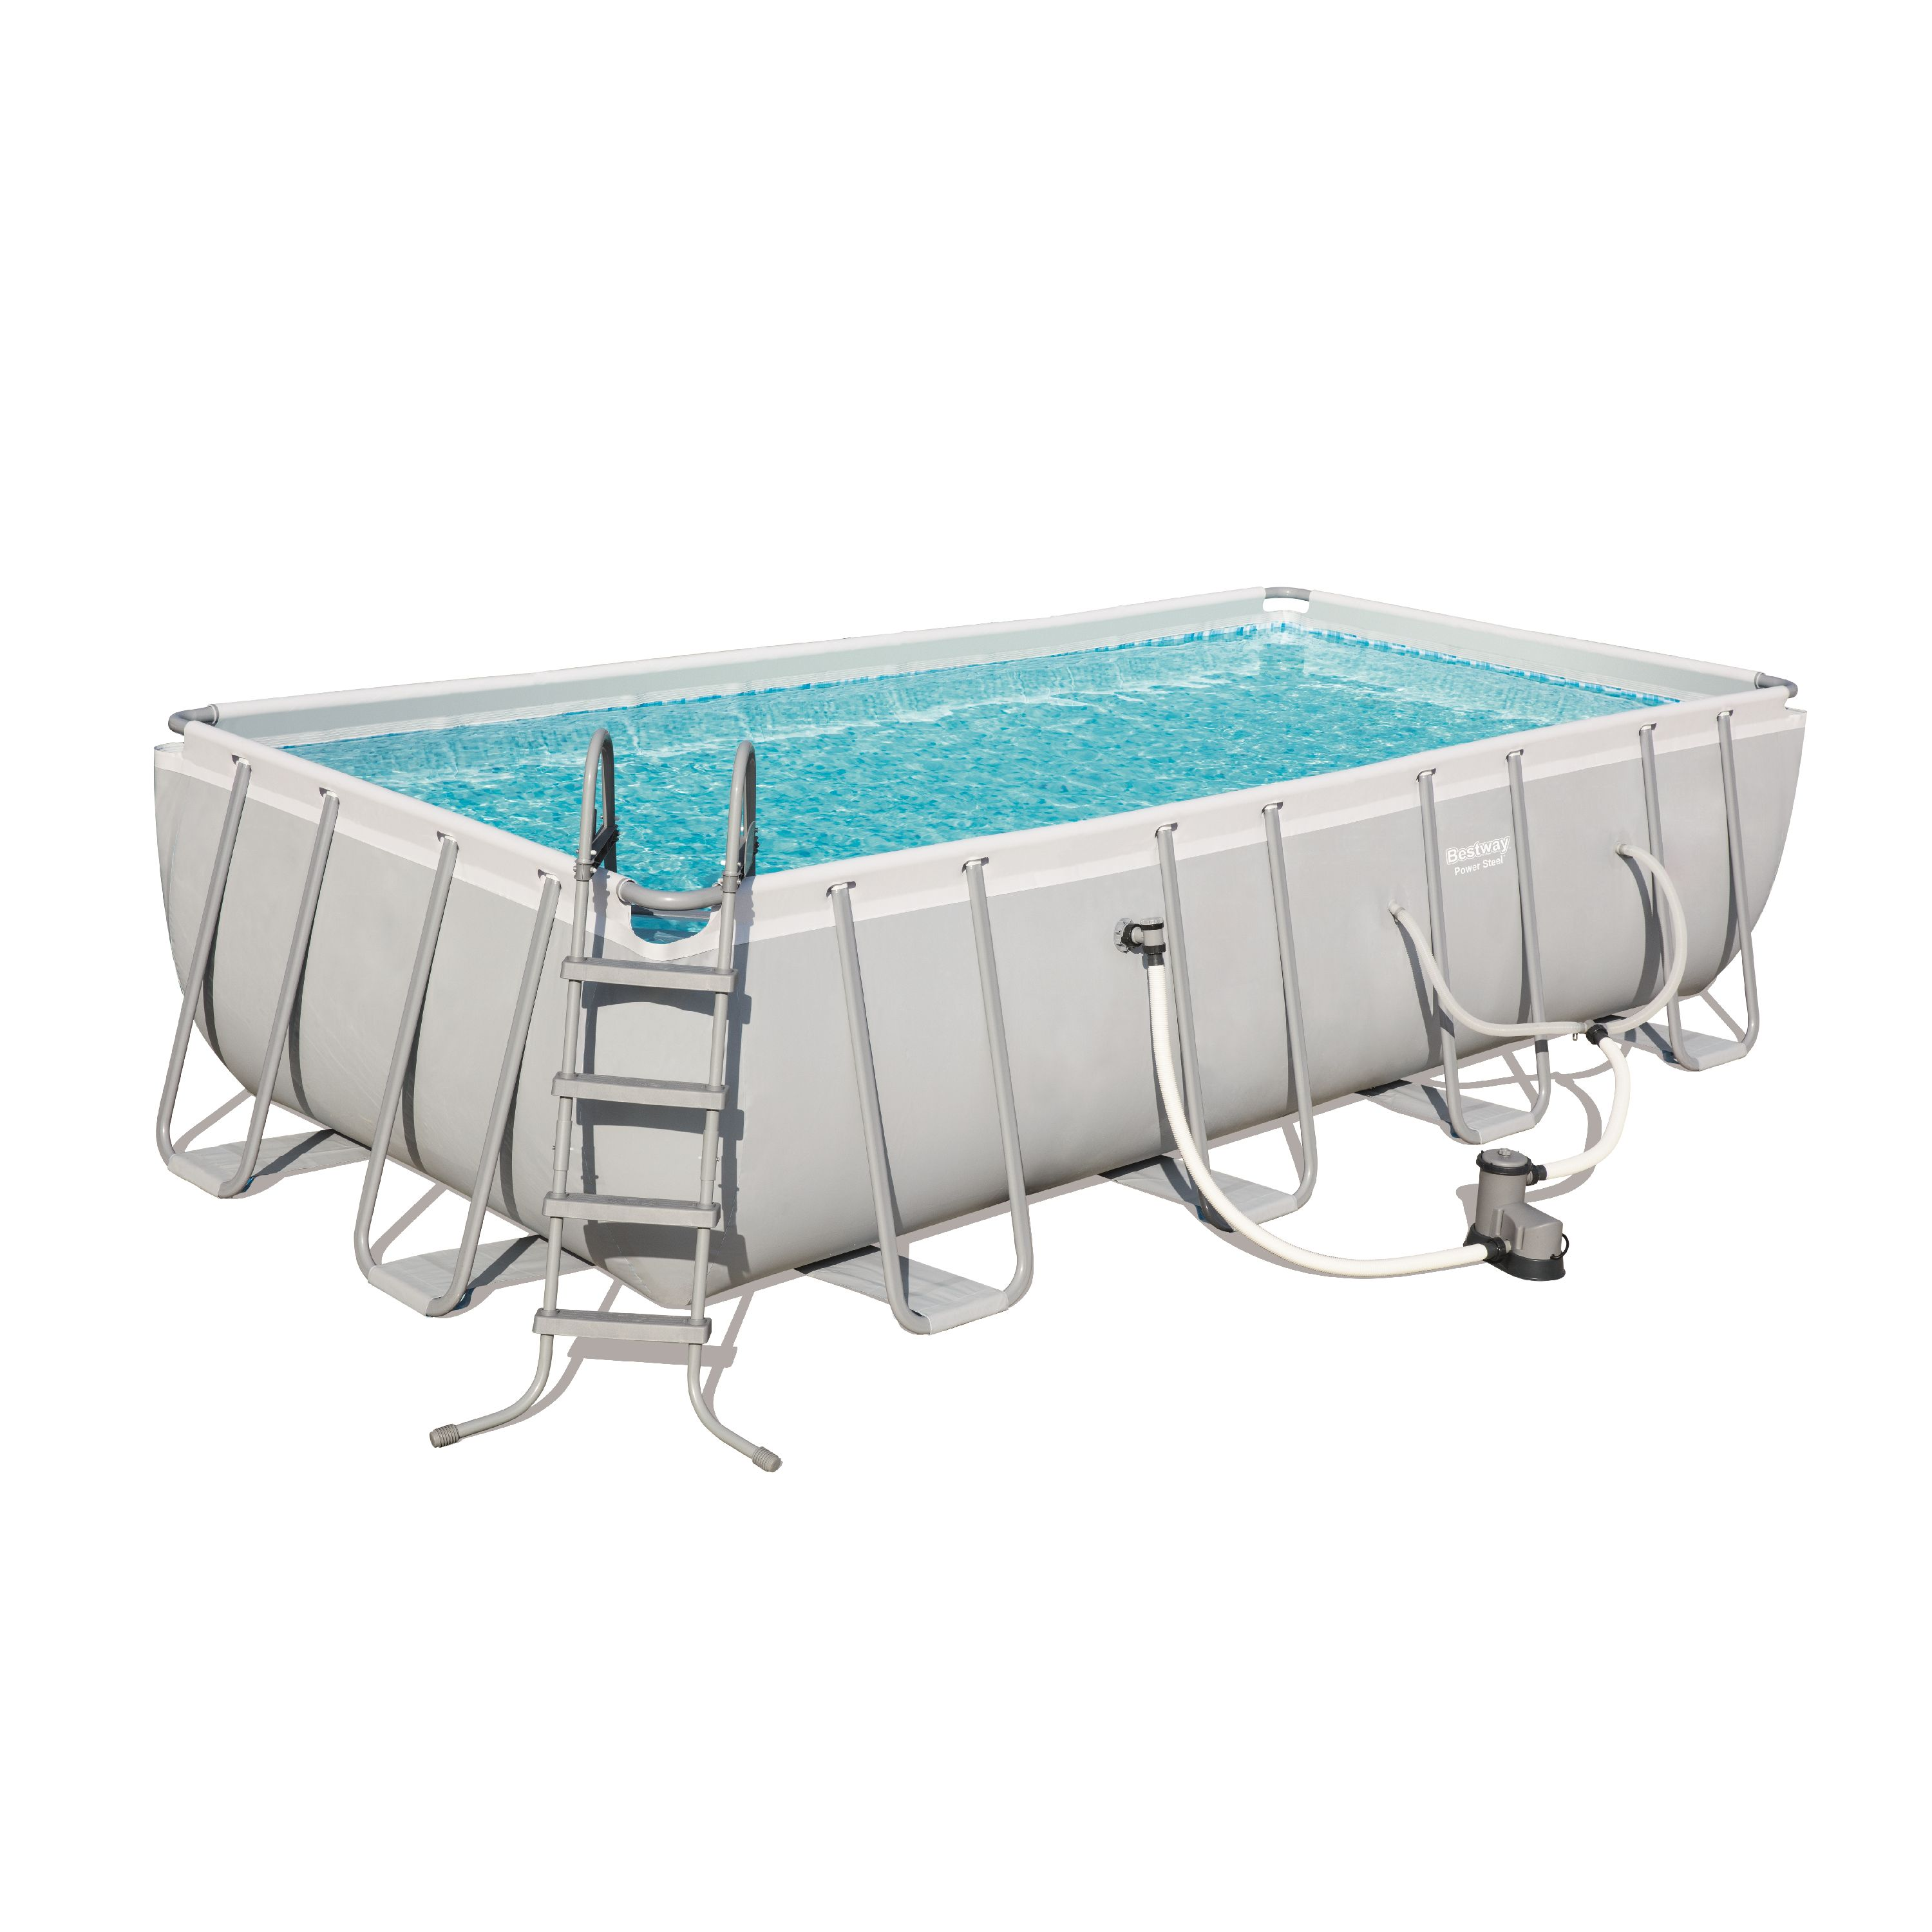 """Bestway Power Steel 18' x 9' x 48"""" Rectangular Frame Swimming Pool Set with Pump, Ladder and Cover"""